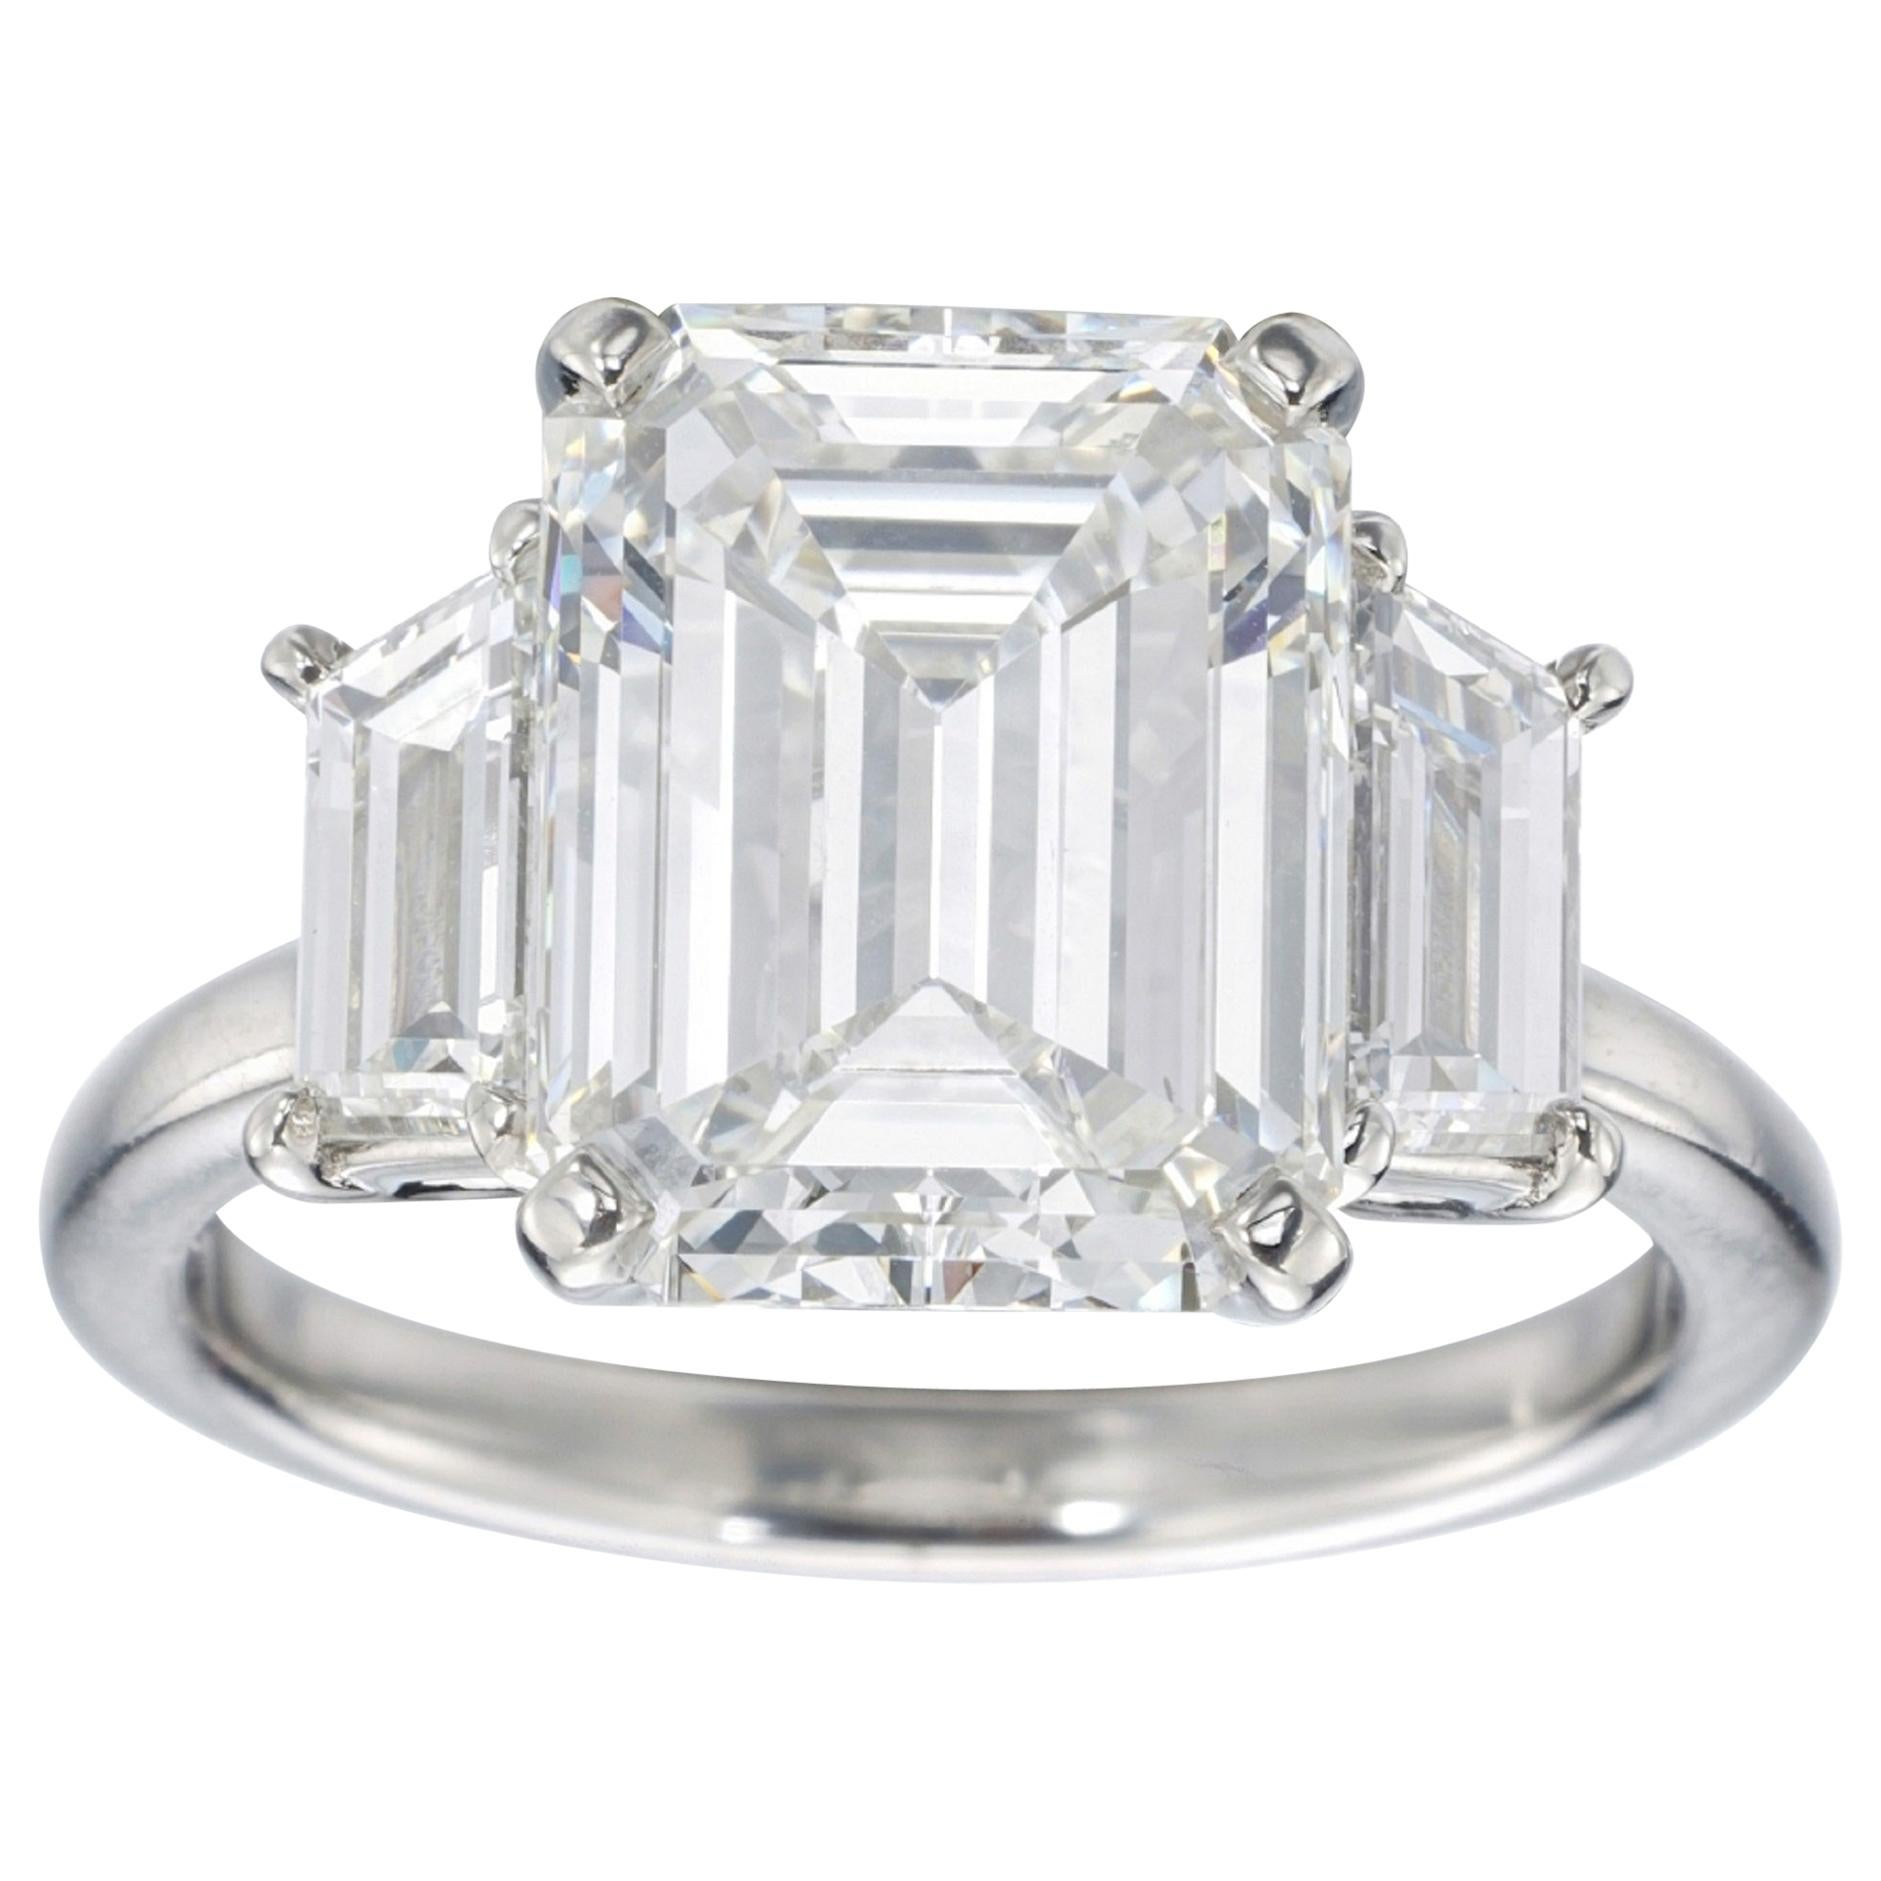 Flawless GIA Certified 6.02 Carat Emerald Cut Tapered Baguettes Diamond Ring